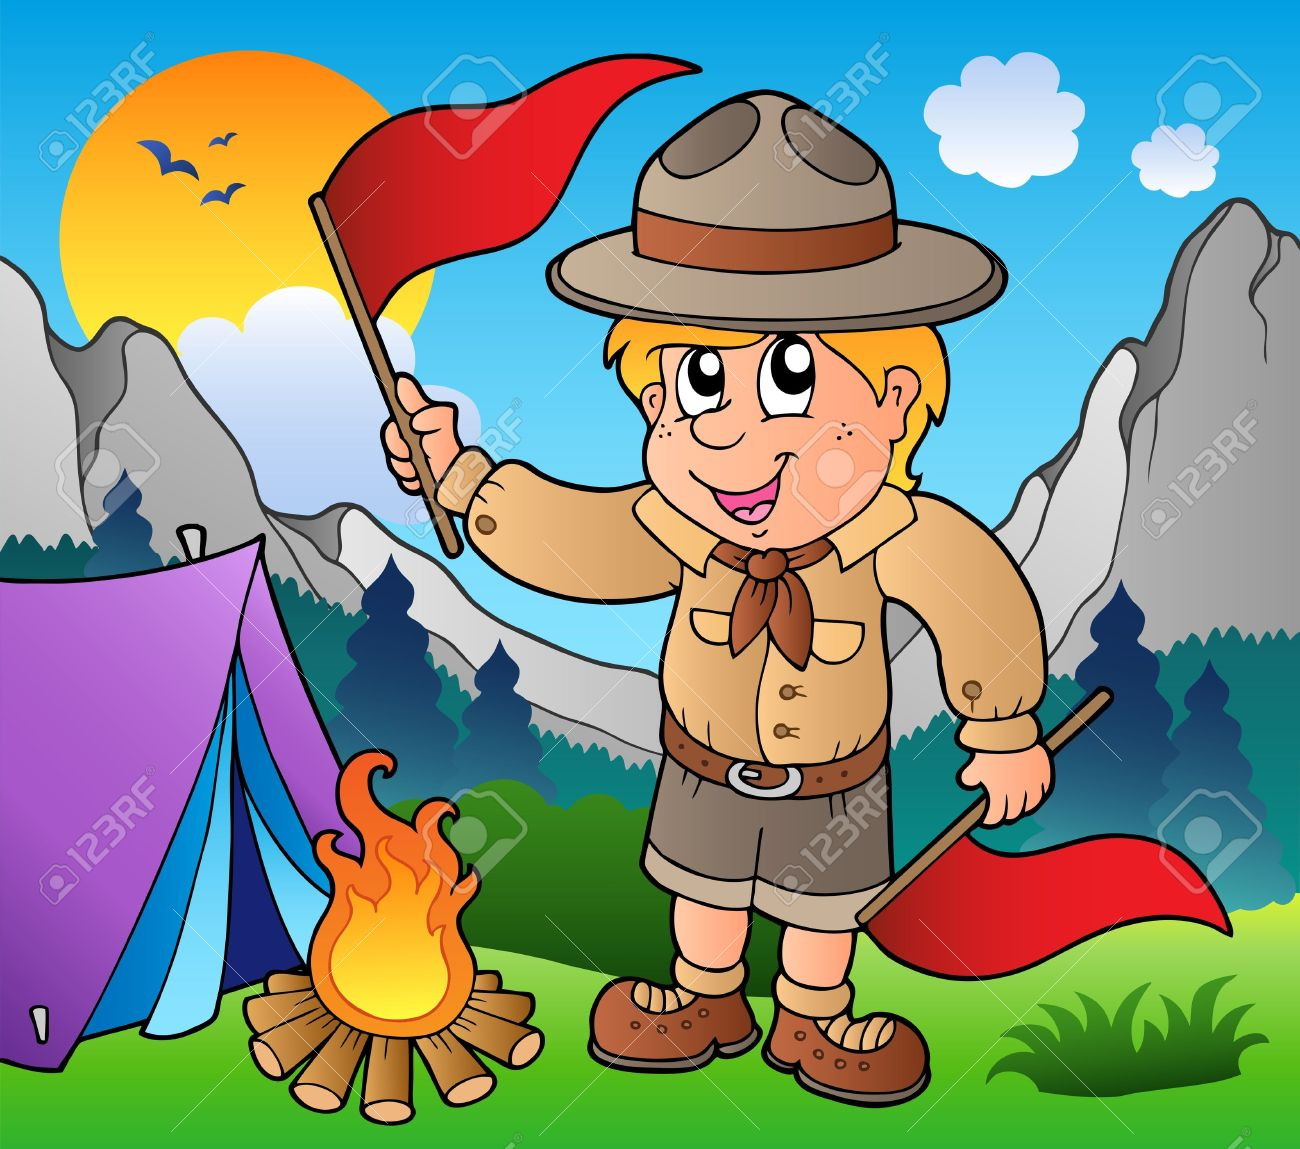 Free Boys Camping Cliparts, Download Free Clip Art, Free Clip Art on.